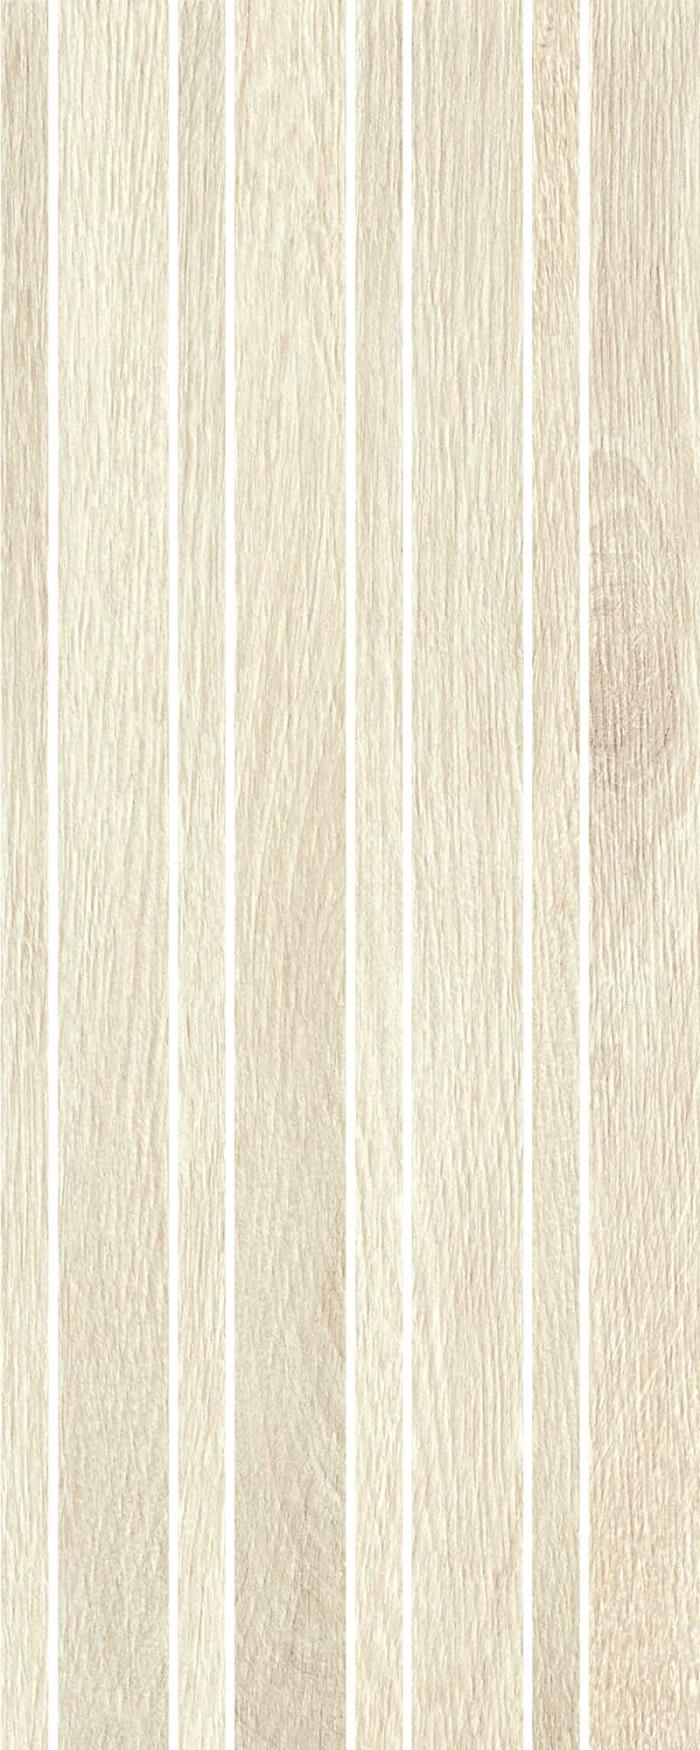 Mosaic Timber Raw White AS